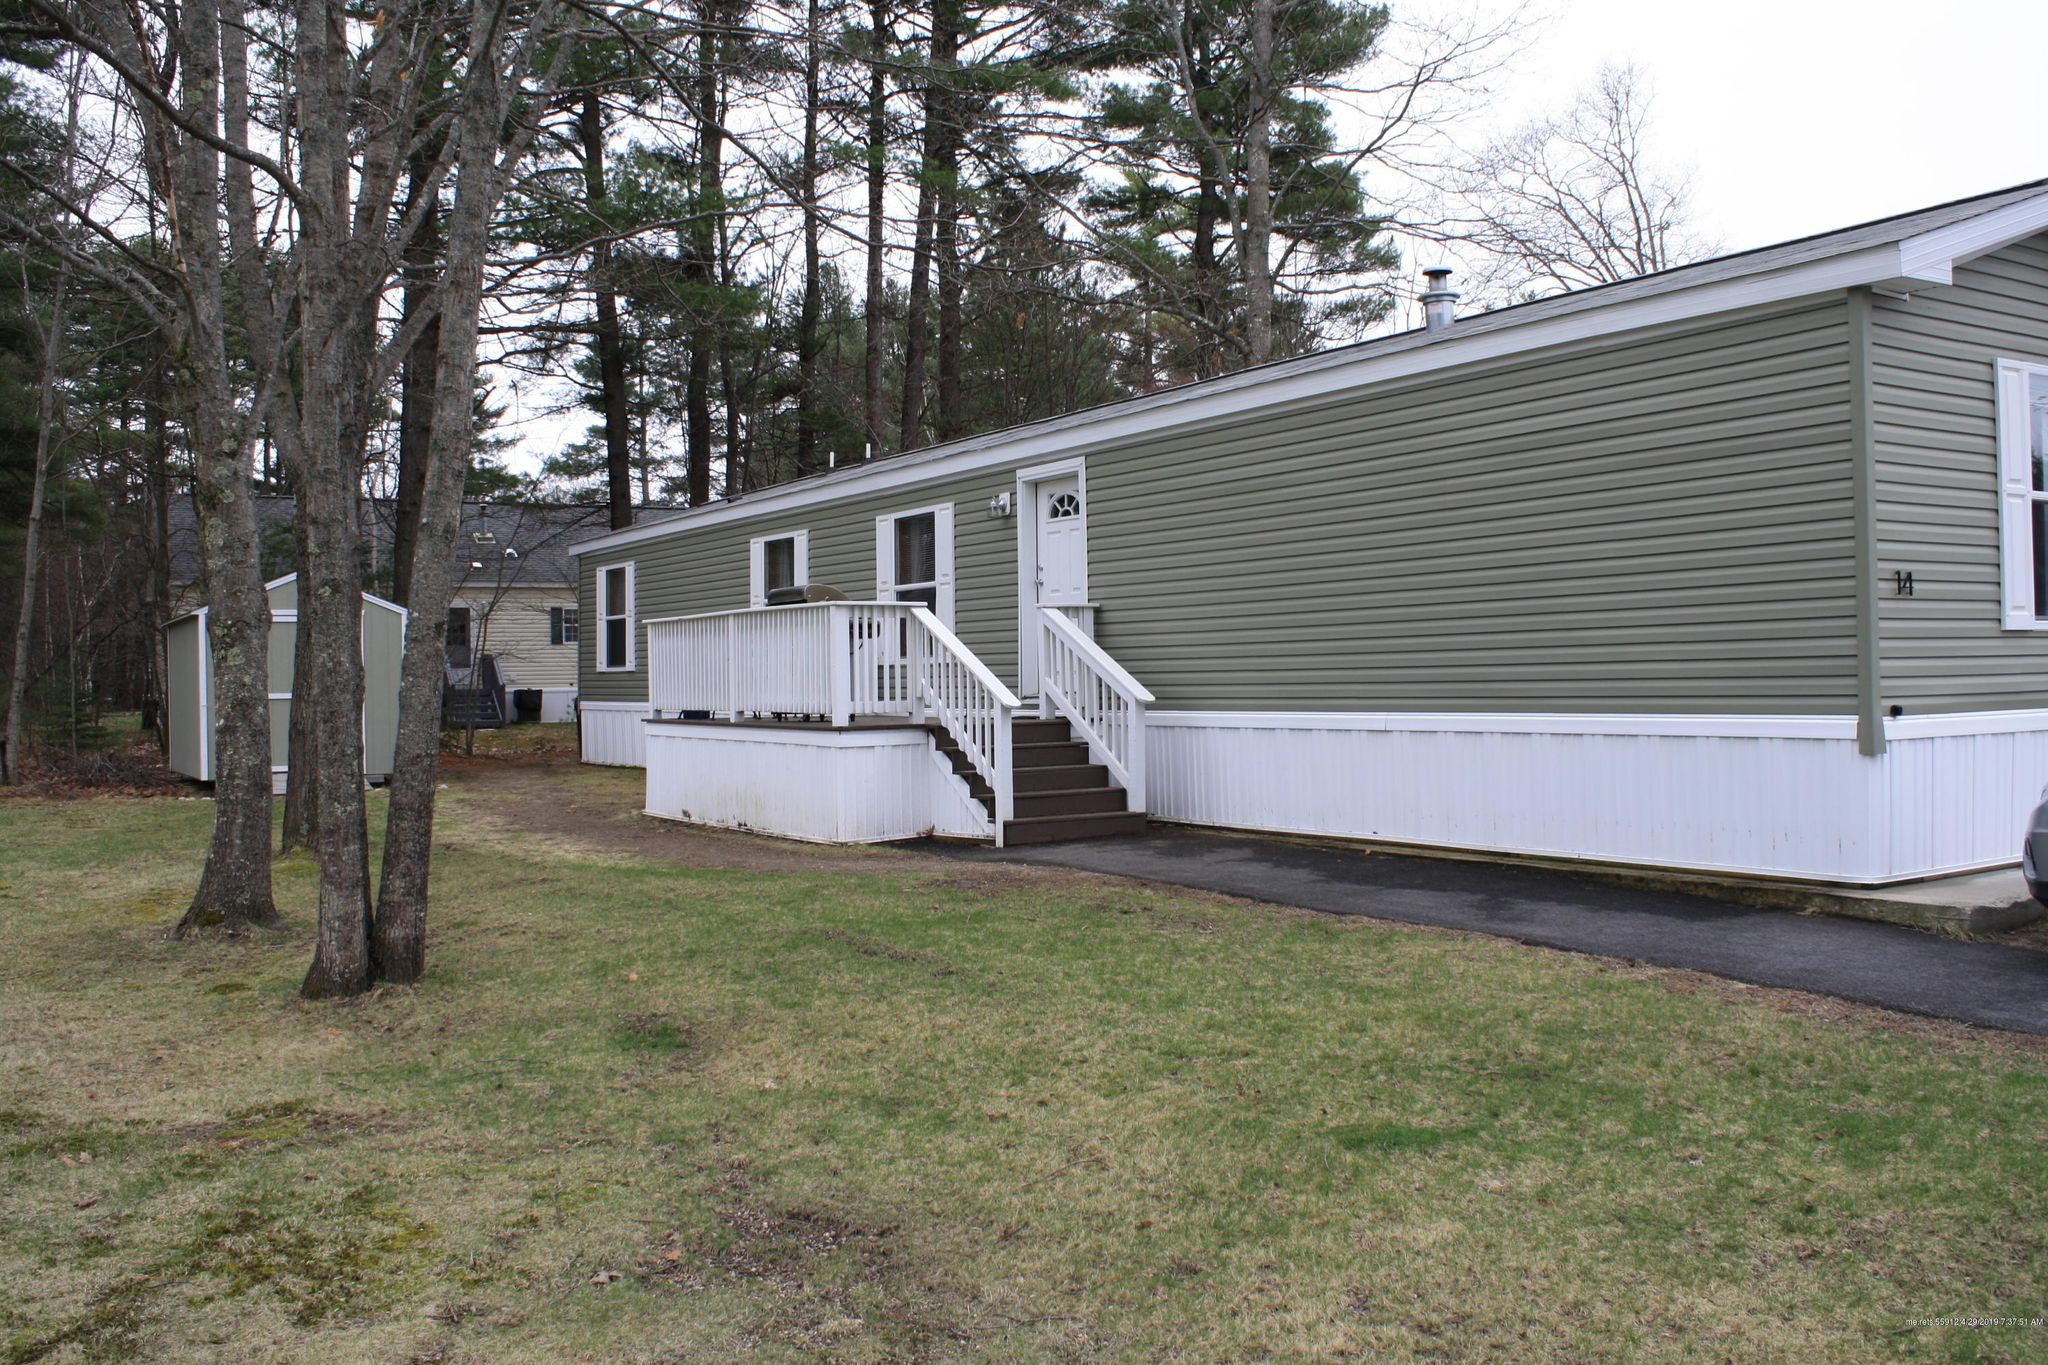 14 Deer Hill Ave, Standish, ME 04084 - 3 Bed, 2 Bath Mobile/Manufactured -  MLS #1411878 - 16 Photos   Trulia